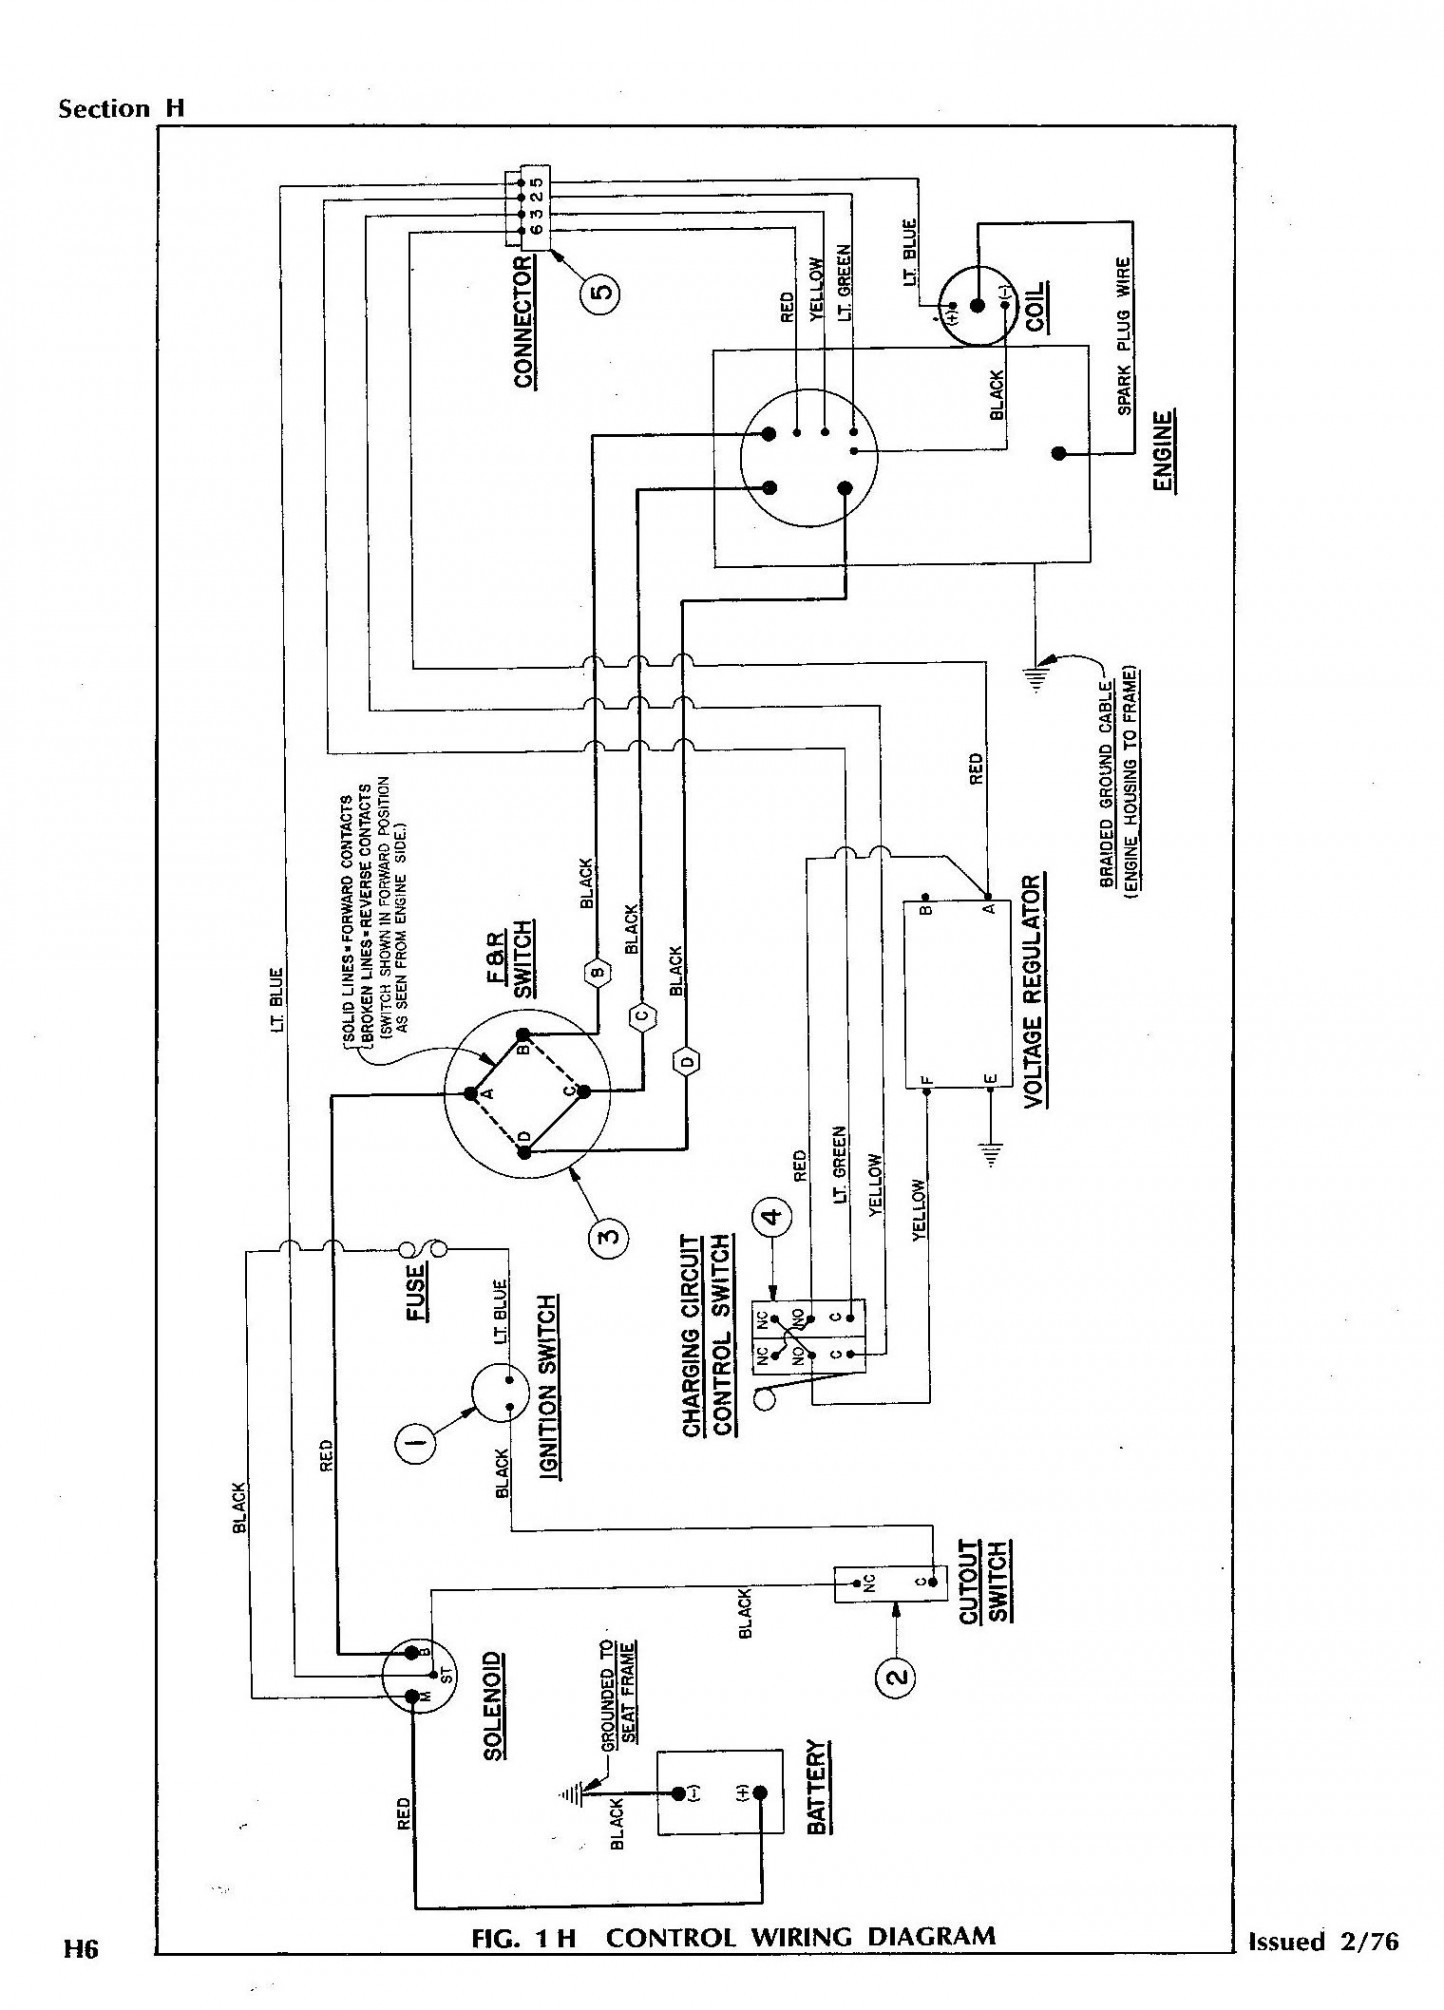 ez go cart wiring diagram ezgo forward reverse switch wiring diagram | free wiring ...